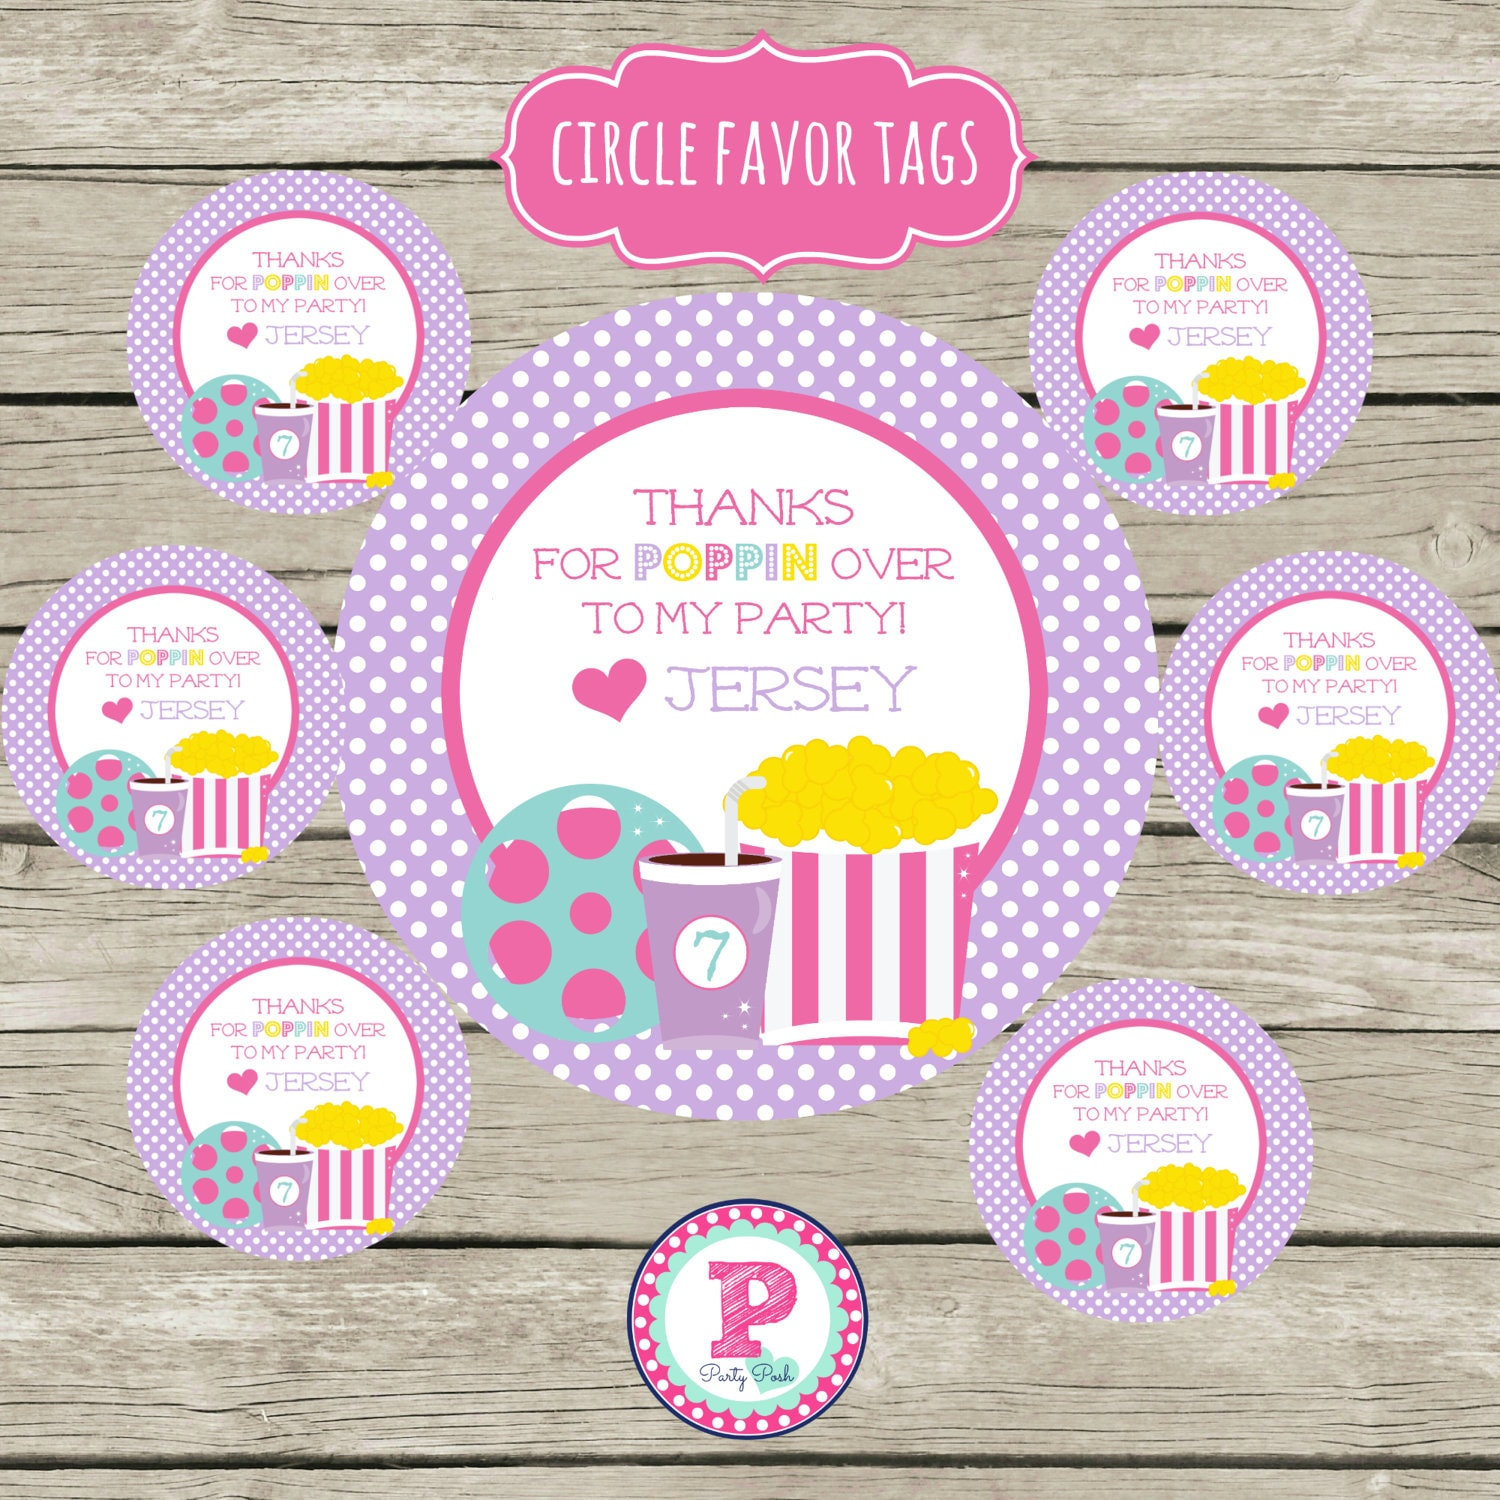 Personalized Movie Birthday Party Favor Tags 2 inch Circle | Etsy